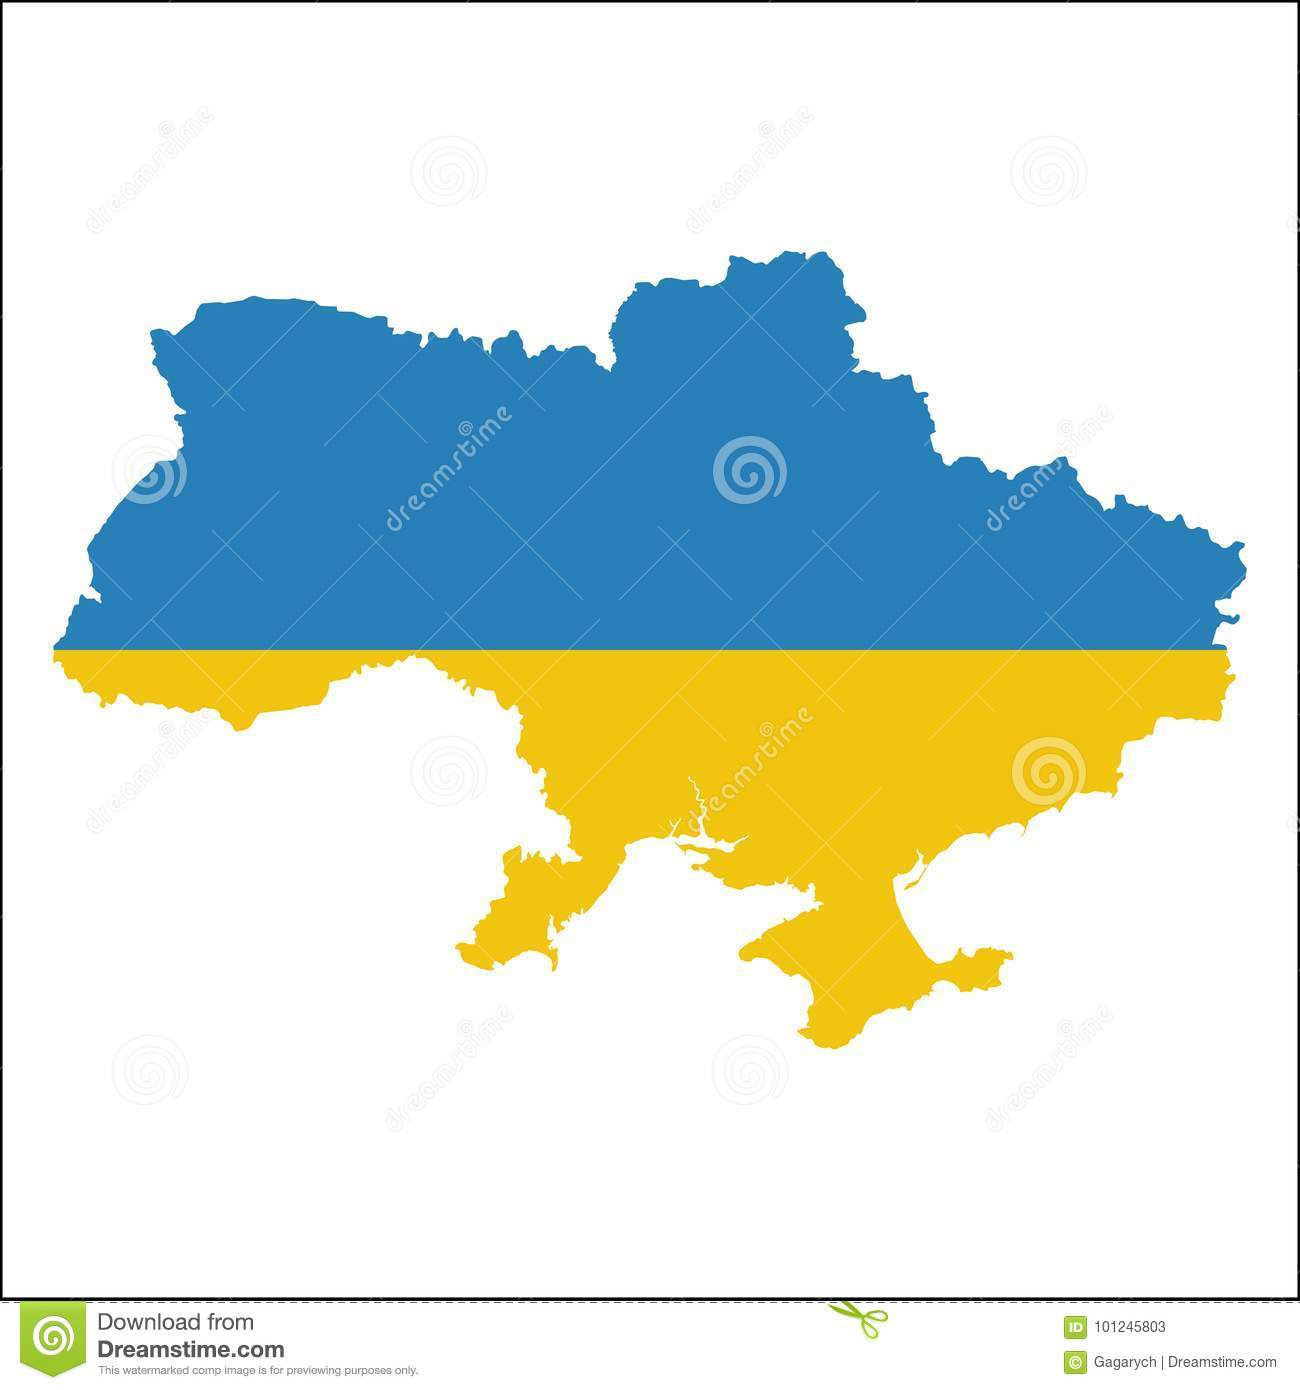 Ukraine high resolution map with national flag stock vector ukraine high resolution map with national flag royalty free vector gumiabroncs Choice Image